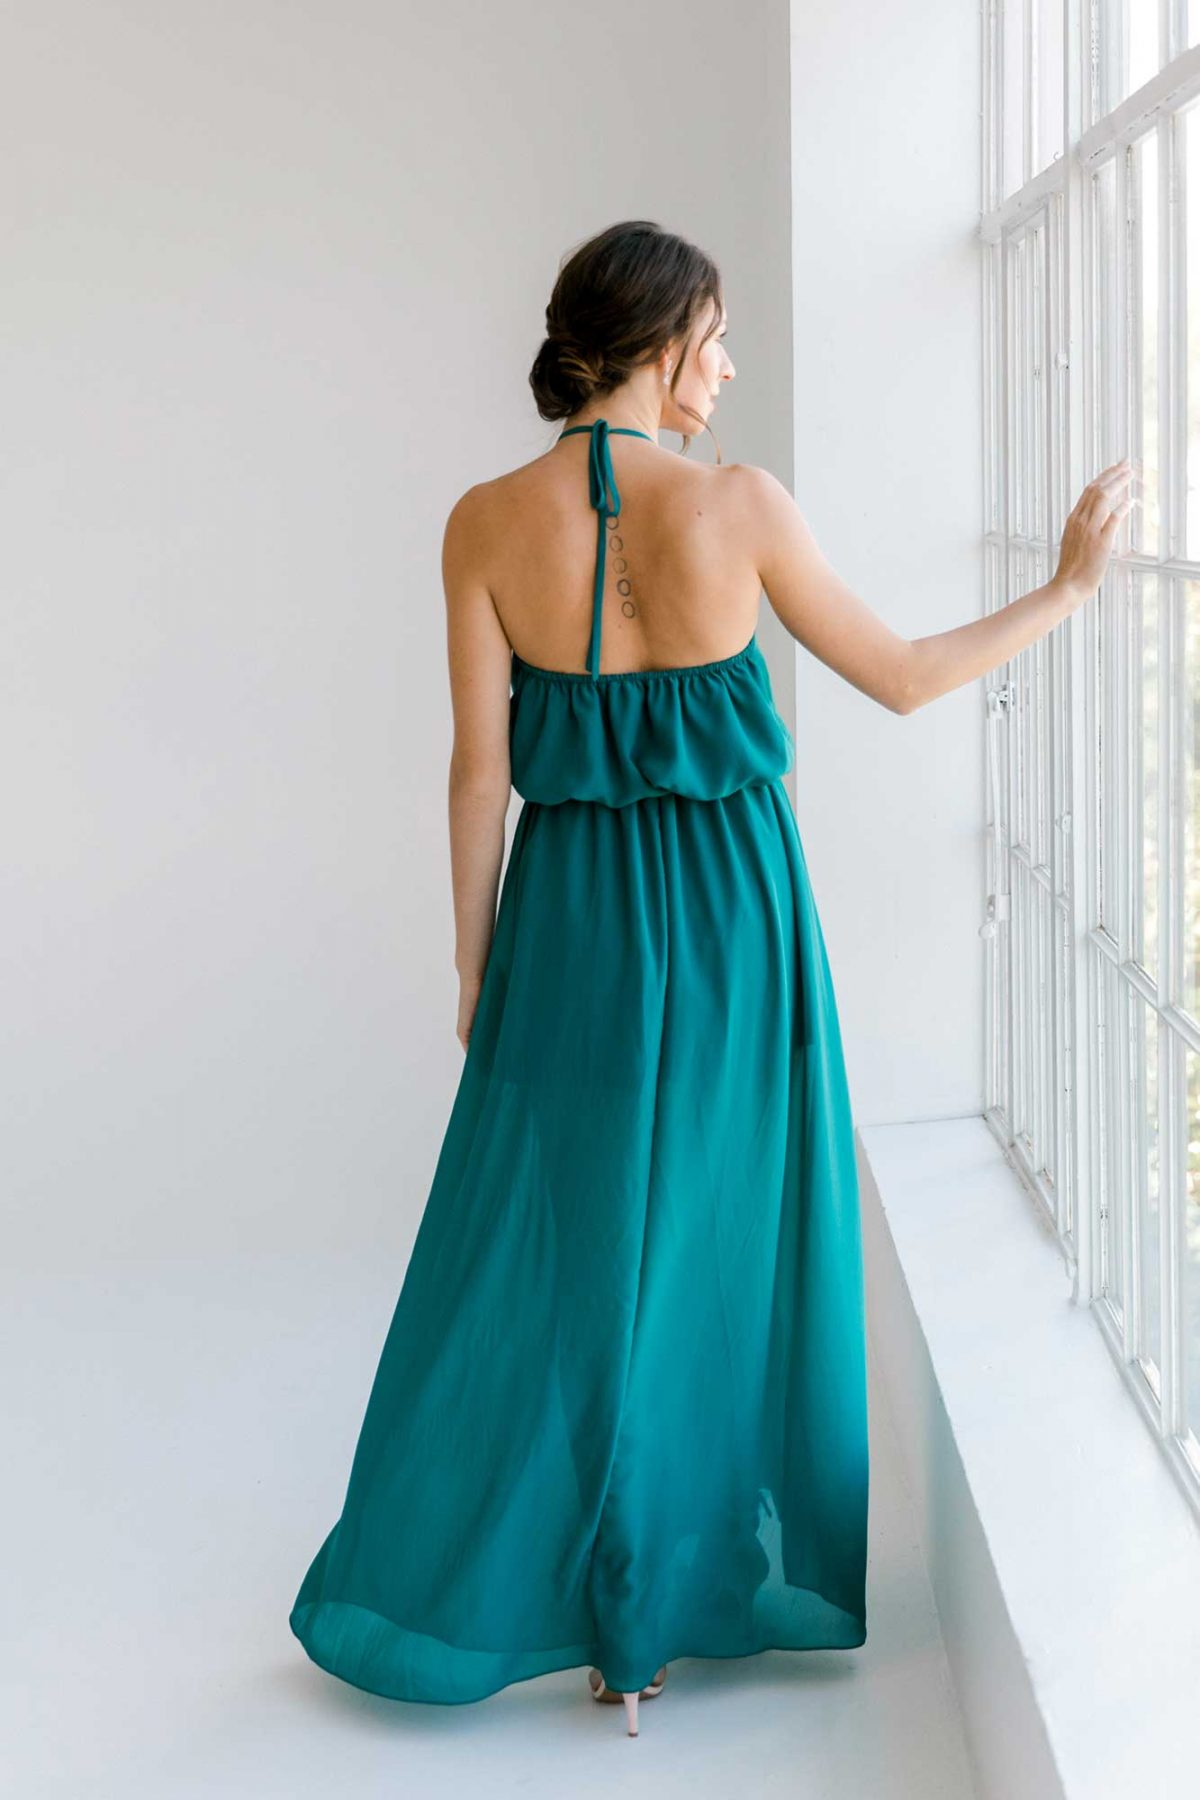 Ivy dress in tealness colour back view